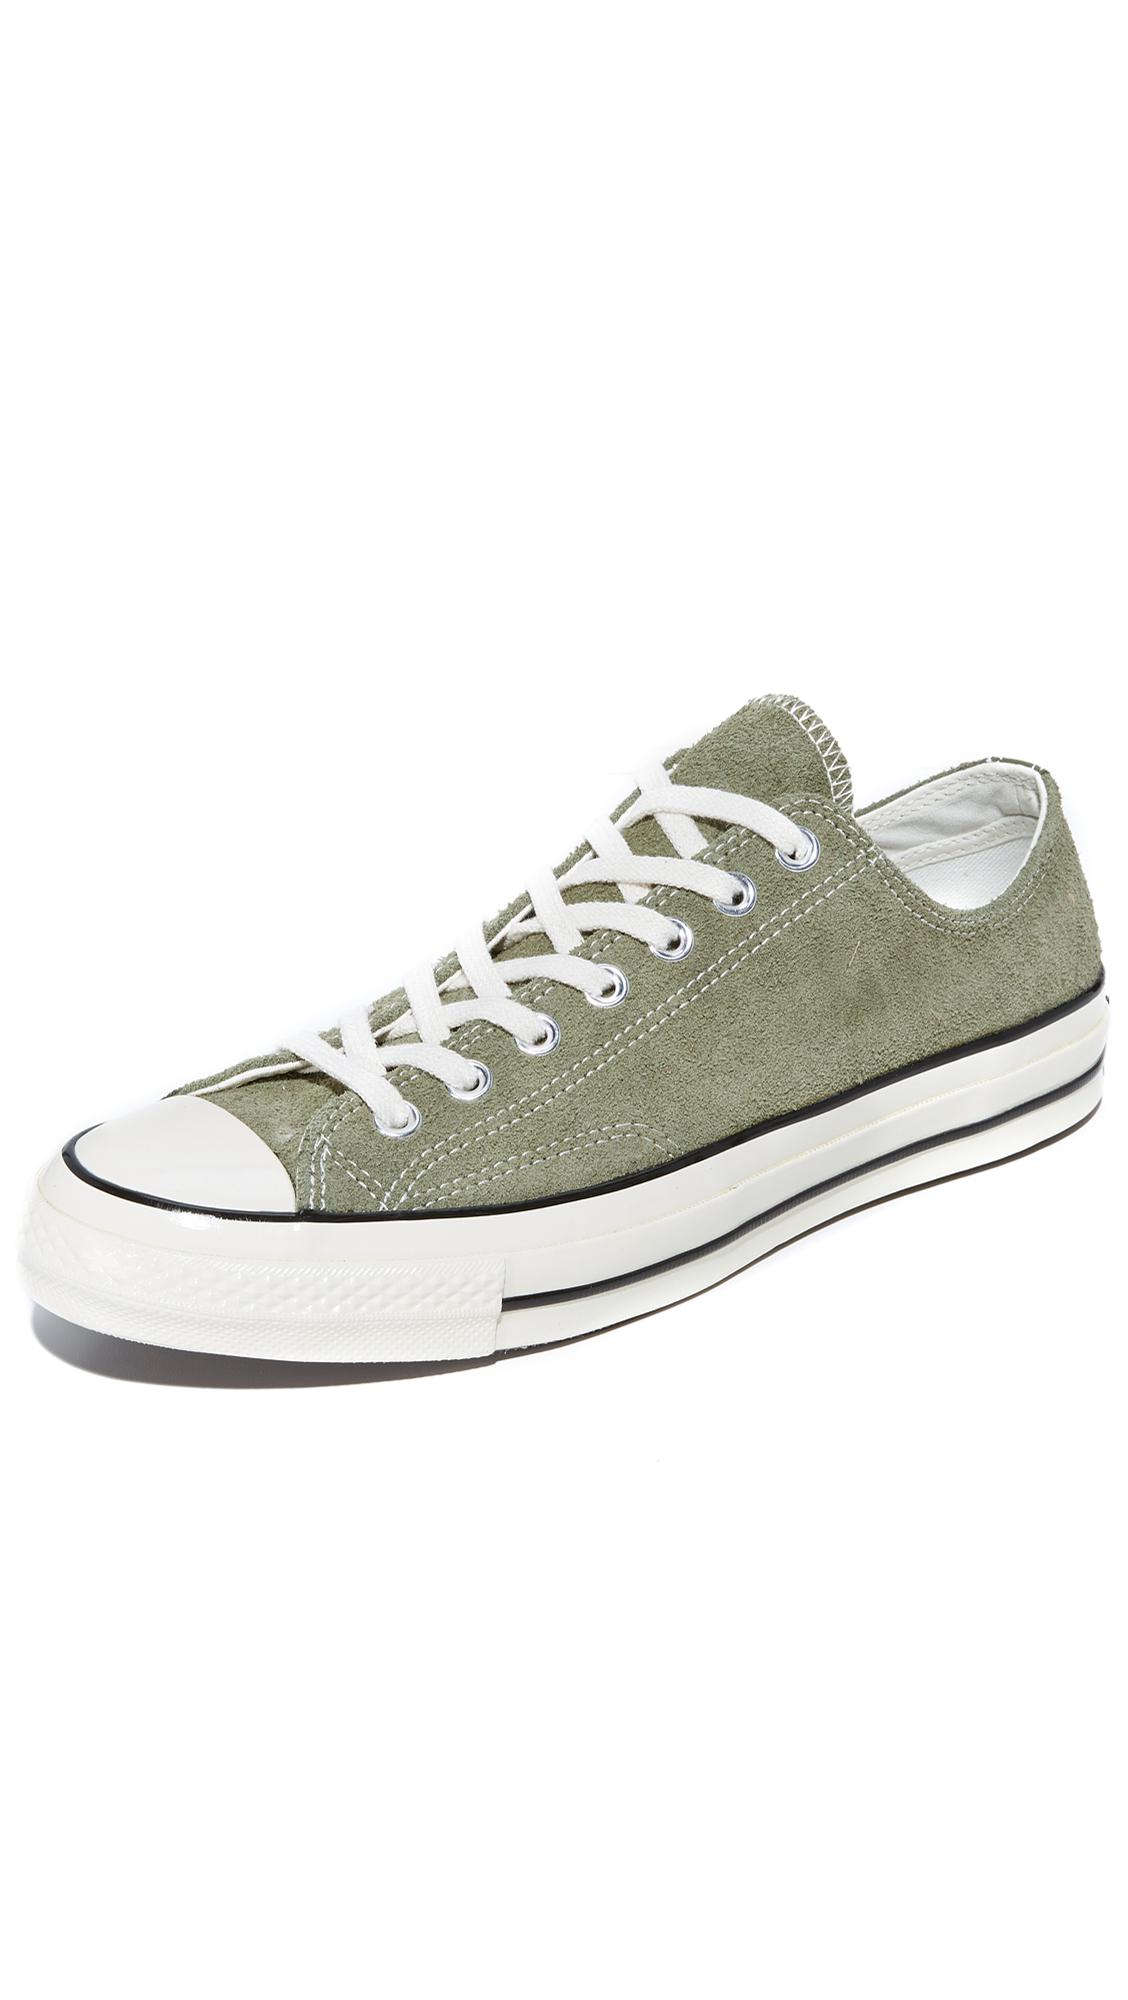 c6f857e98777 Lyst - Converse Chuck Taylor All Star  70s Suede Sneakers for Men